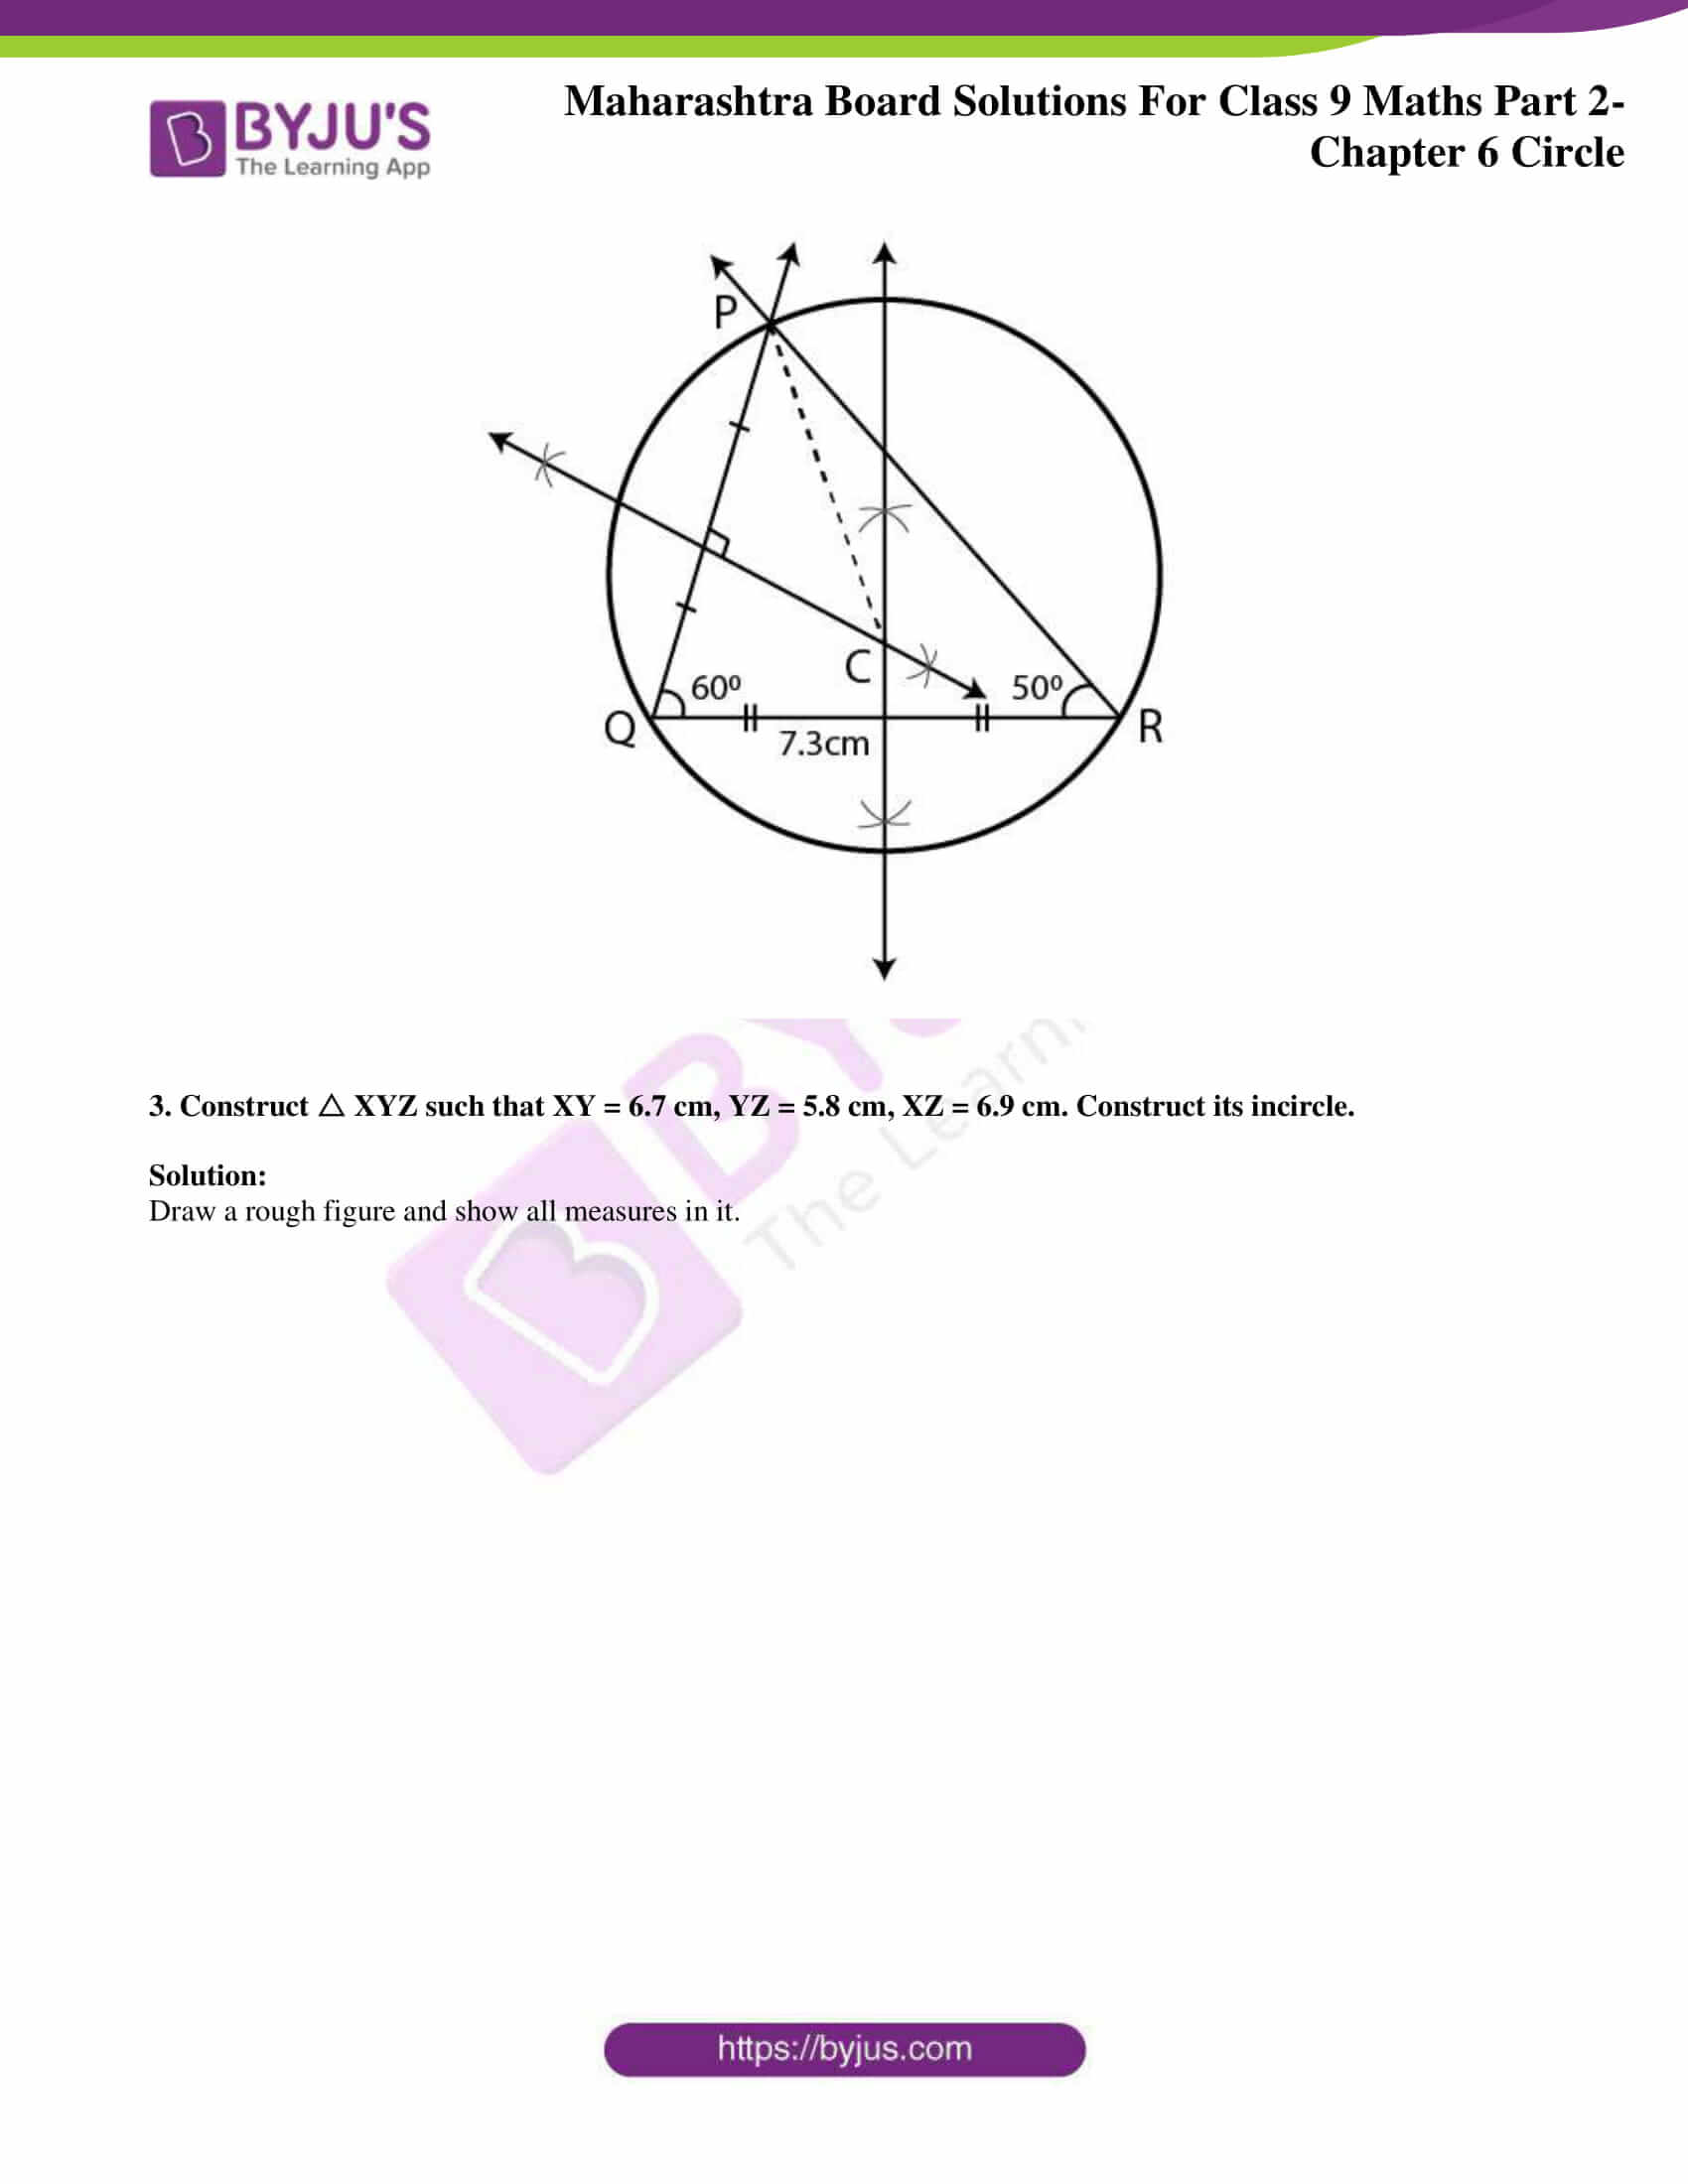 msbshse solutions for class 9 maths part 2 chapter 6 13